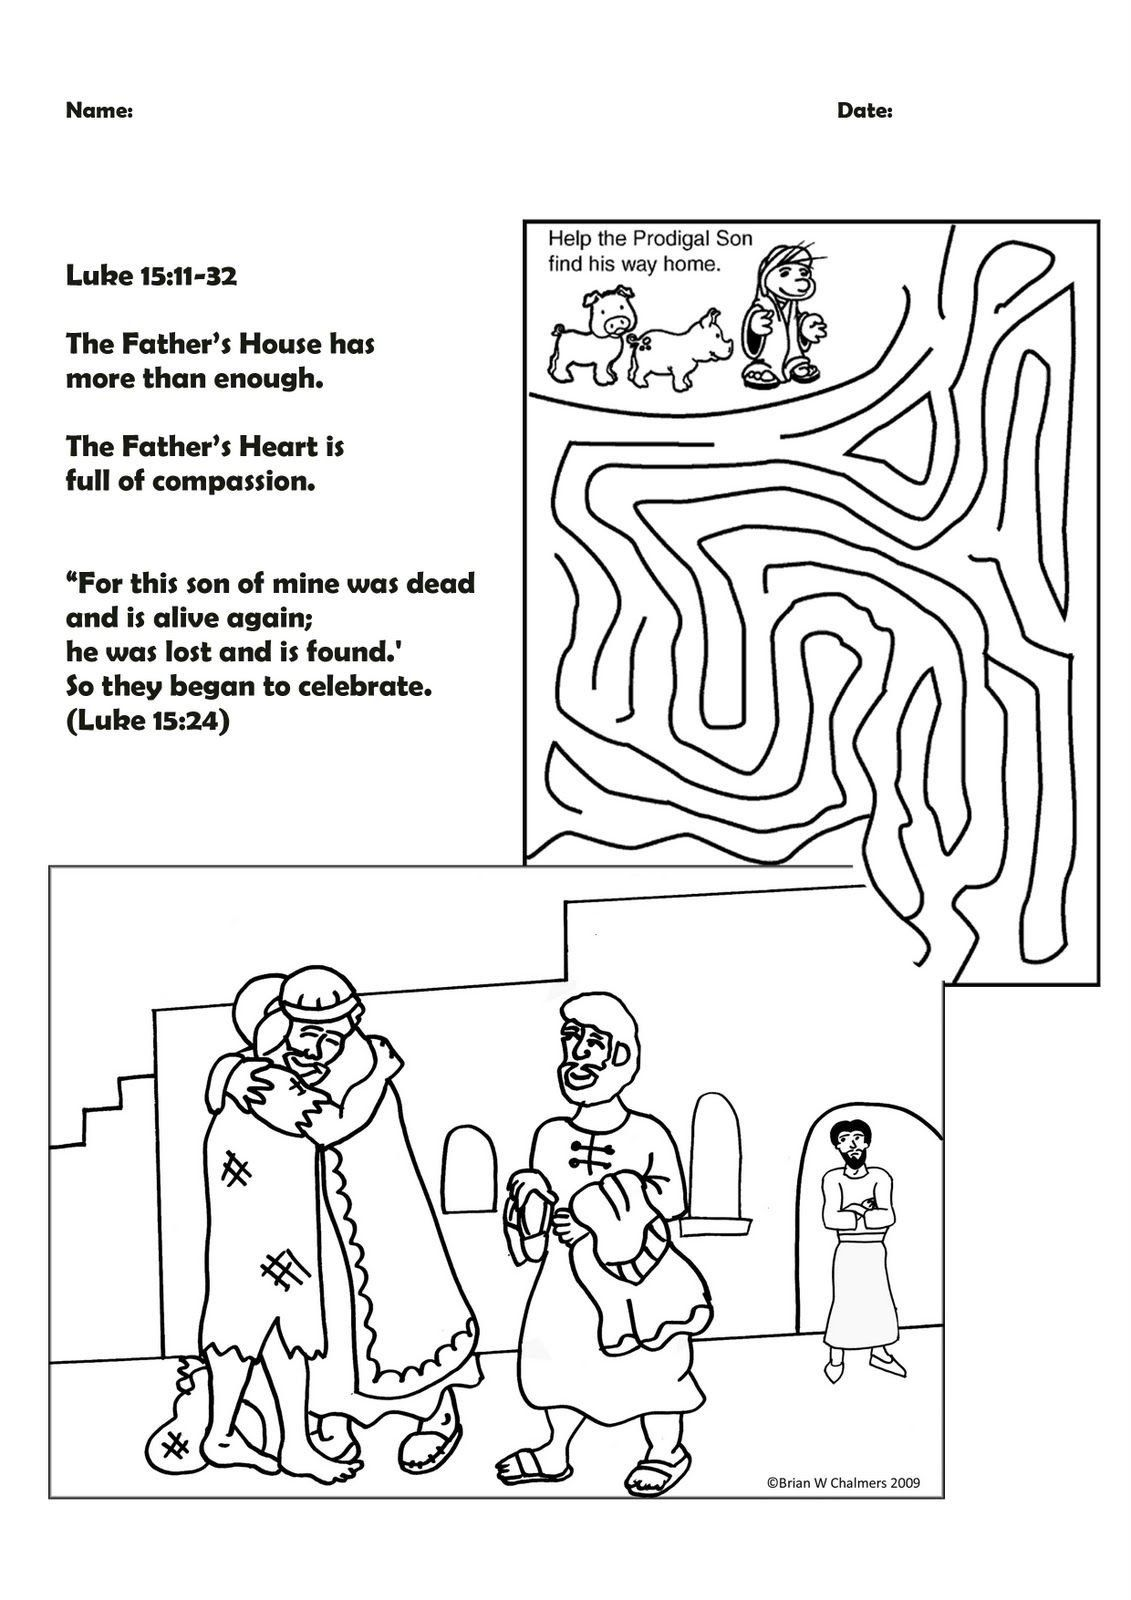 Prodical Son Coloring Pages Parable Of The Lost Sons Coloring Pages Monster Truck Coloring Pages Prodigal